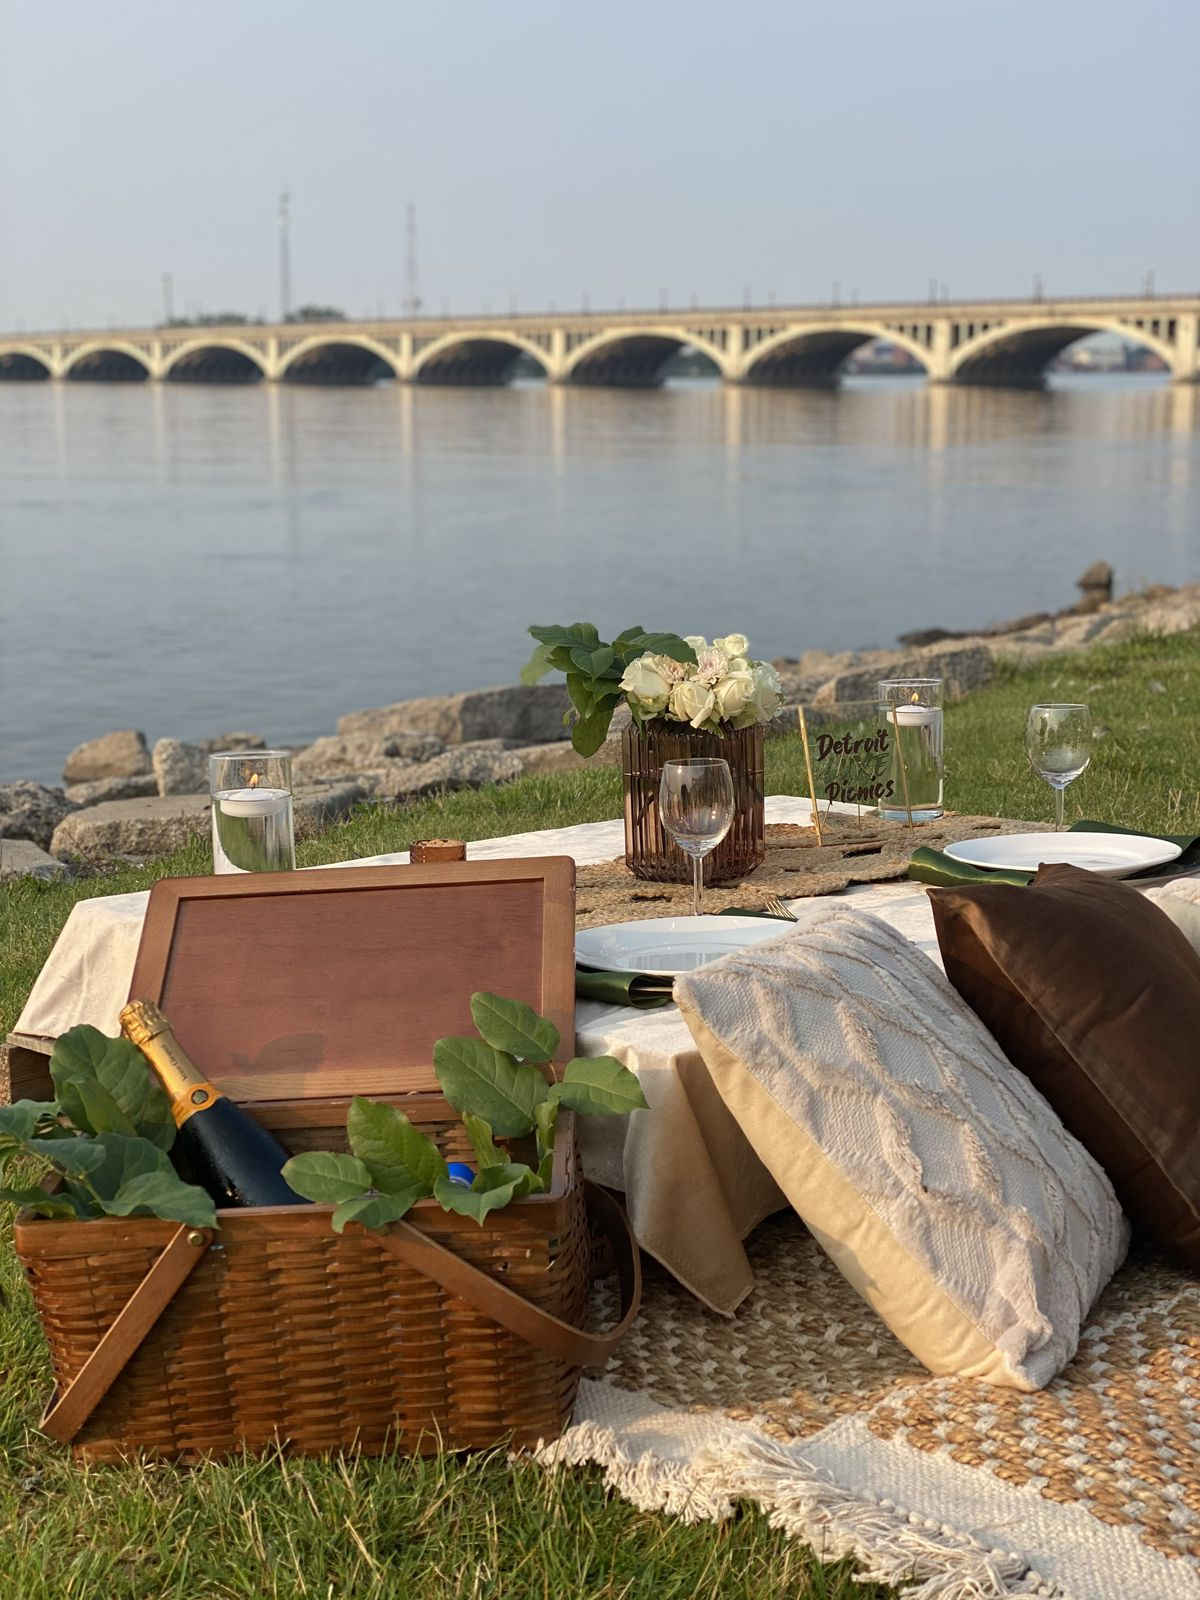 A picnic basket holding bubbly is propped against a table. Large pillows rest against the table. The MacArthur Bridge is shown over the Detroit River.